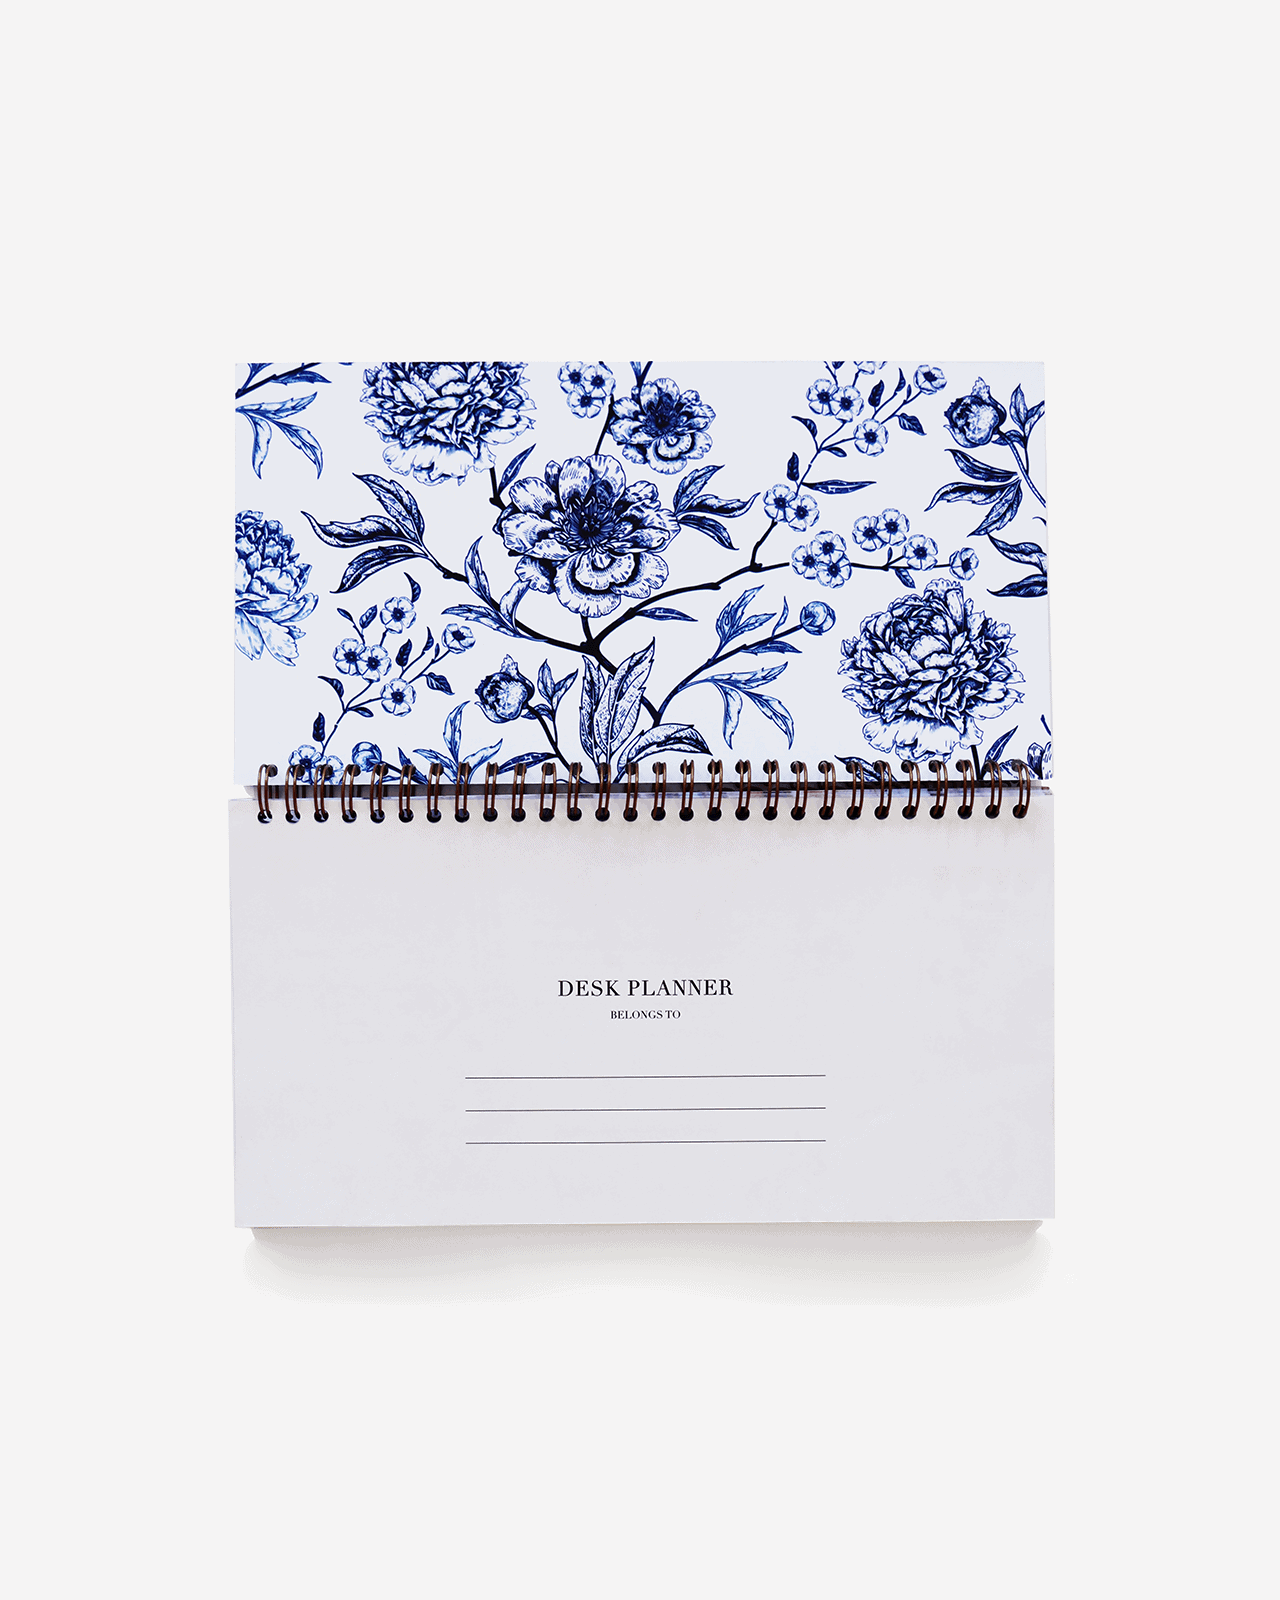 Supplied by Lily Desk Planner in Luxurious Toile de Jouy